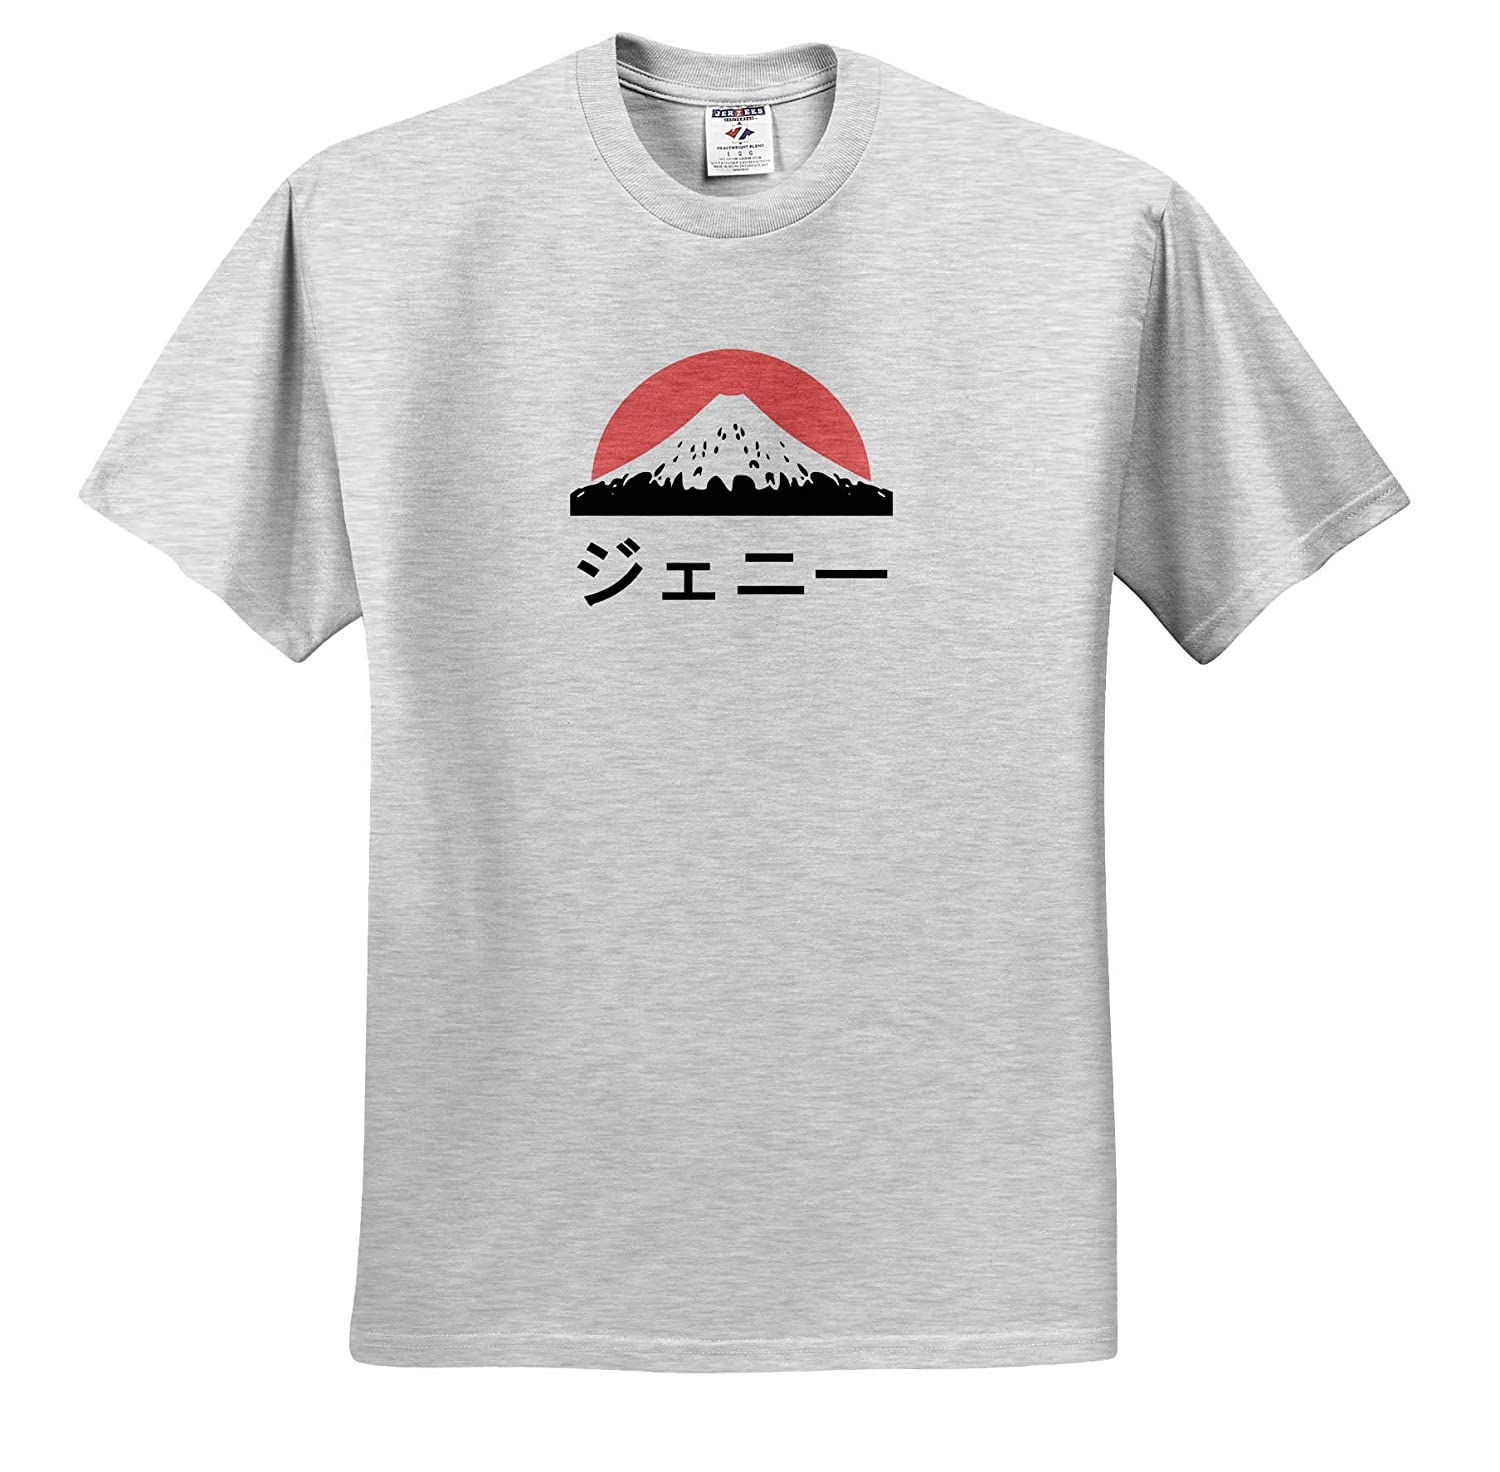 ts/_320508 Name in Japanese 3dRose InspirationzStore Jenny in Japanese Letters Adult T-Shirt XL